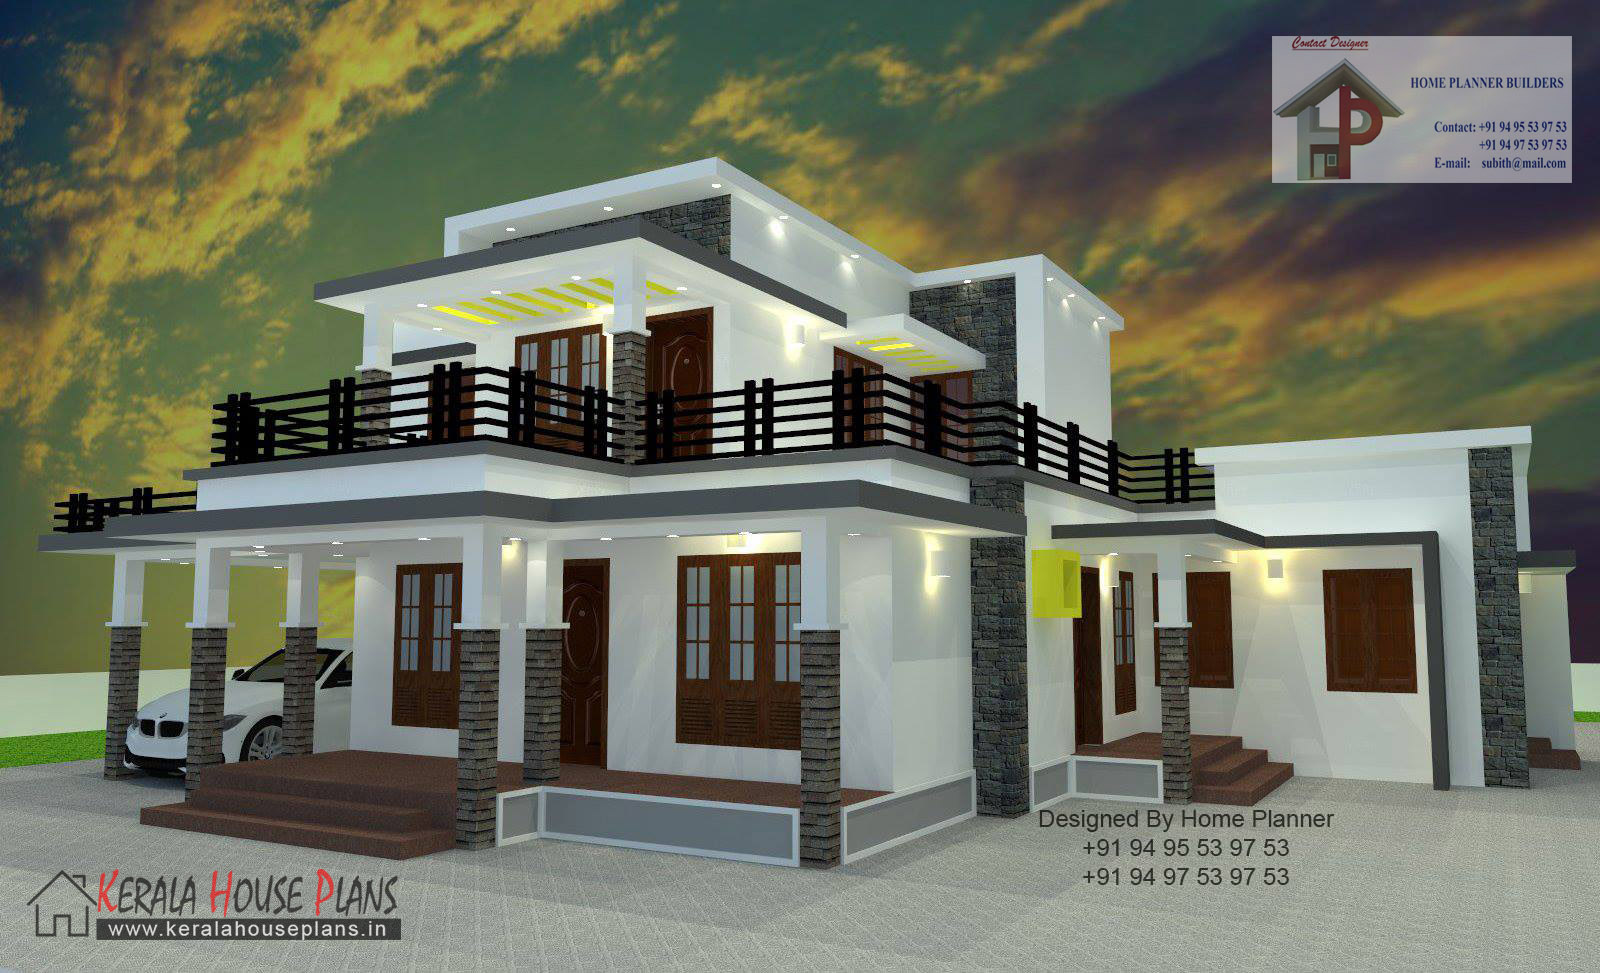 2000 sqft box type house kerala house plans designs for Kerala house models and plans